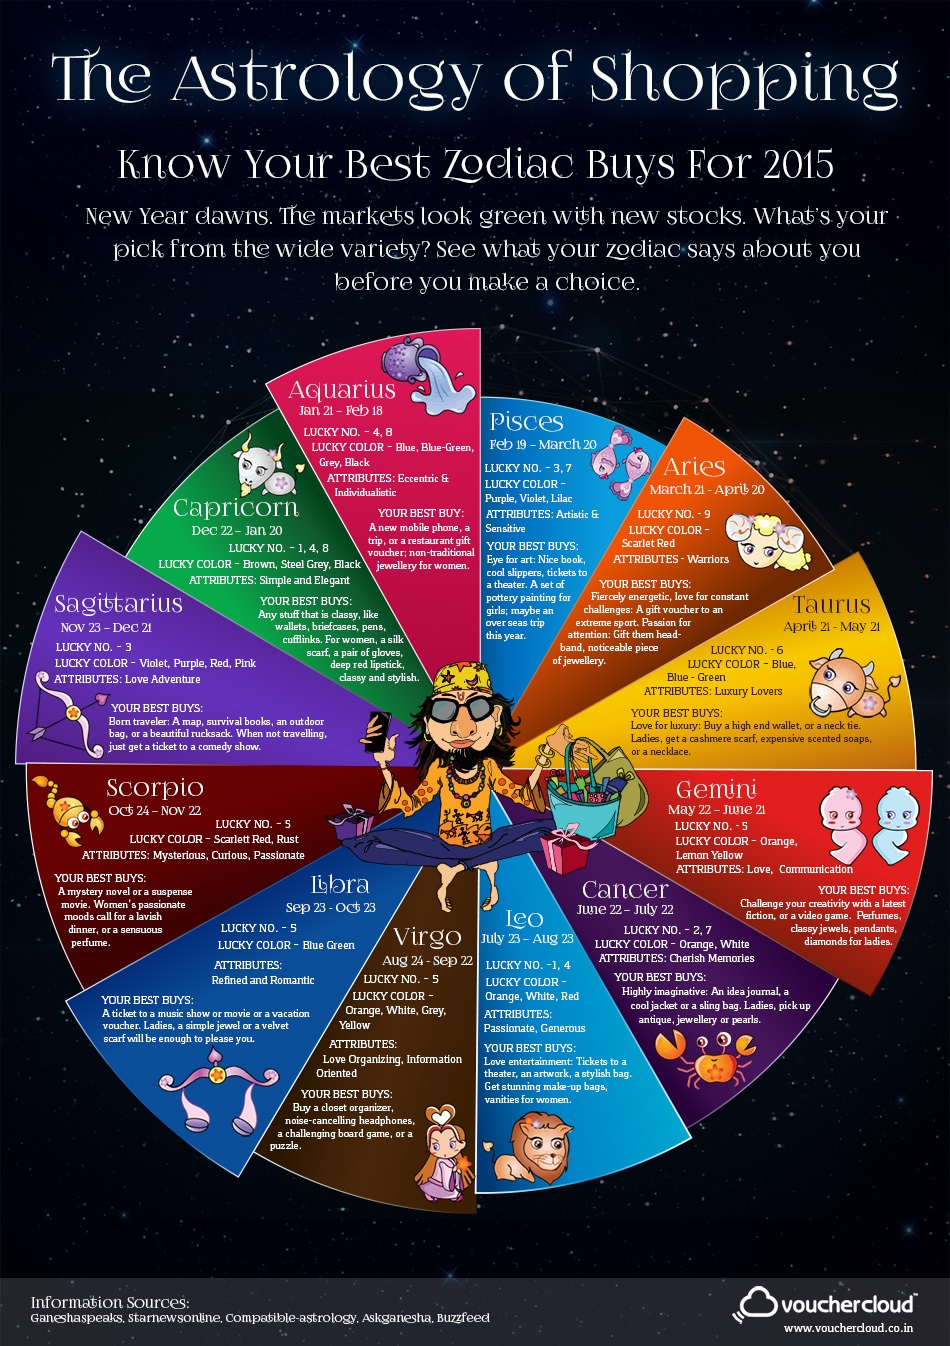 The Astrology of Shopping Infographic